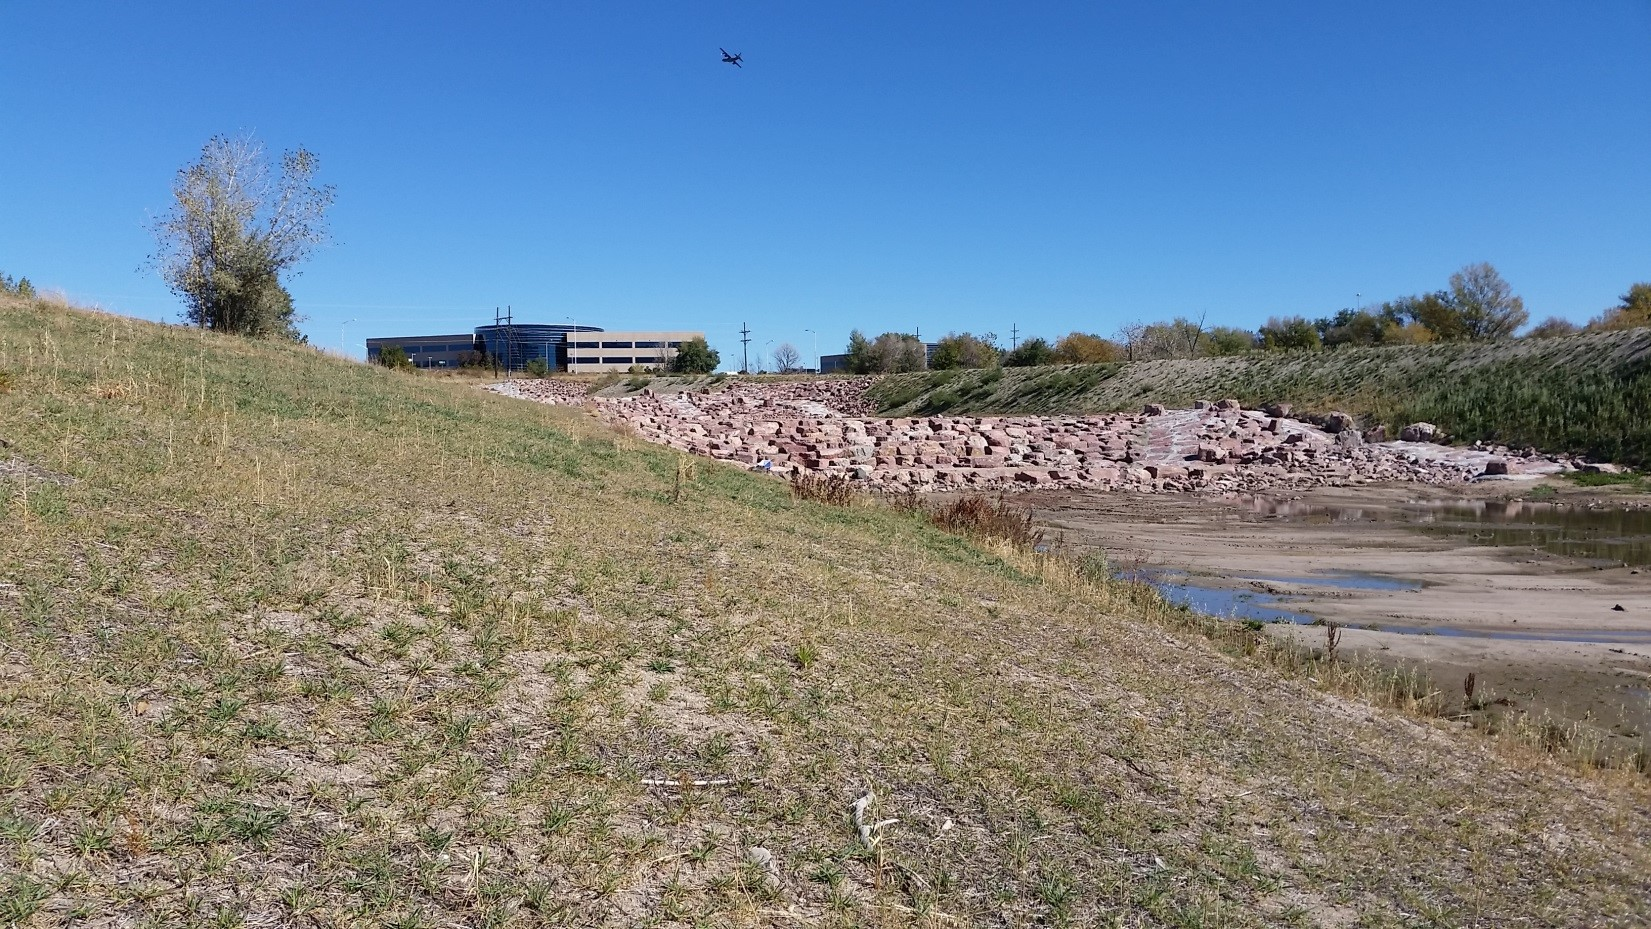 After - Image of grassy creek bank and stone spillway